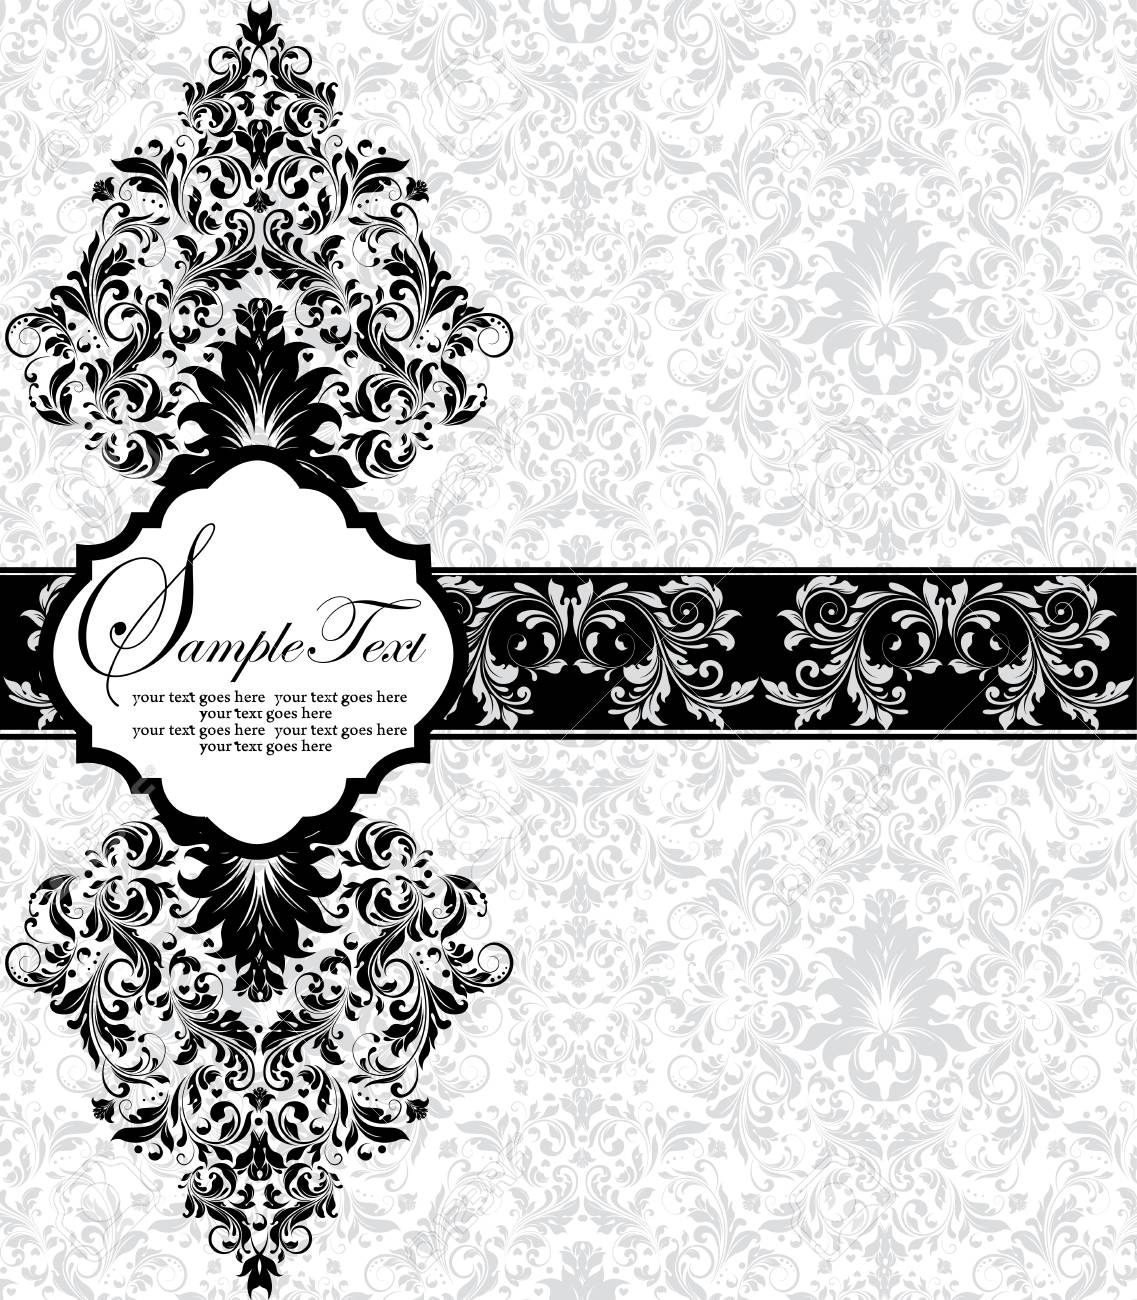 Vintage invitation card with ornate elegant retro abstract floral invitation card with ornate elegant retro abstract floral design black flowers and leaves on pale green and white background with ribbon vector stopboris Image collections